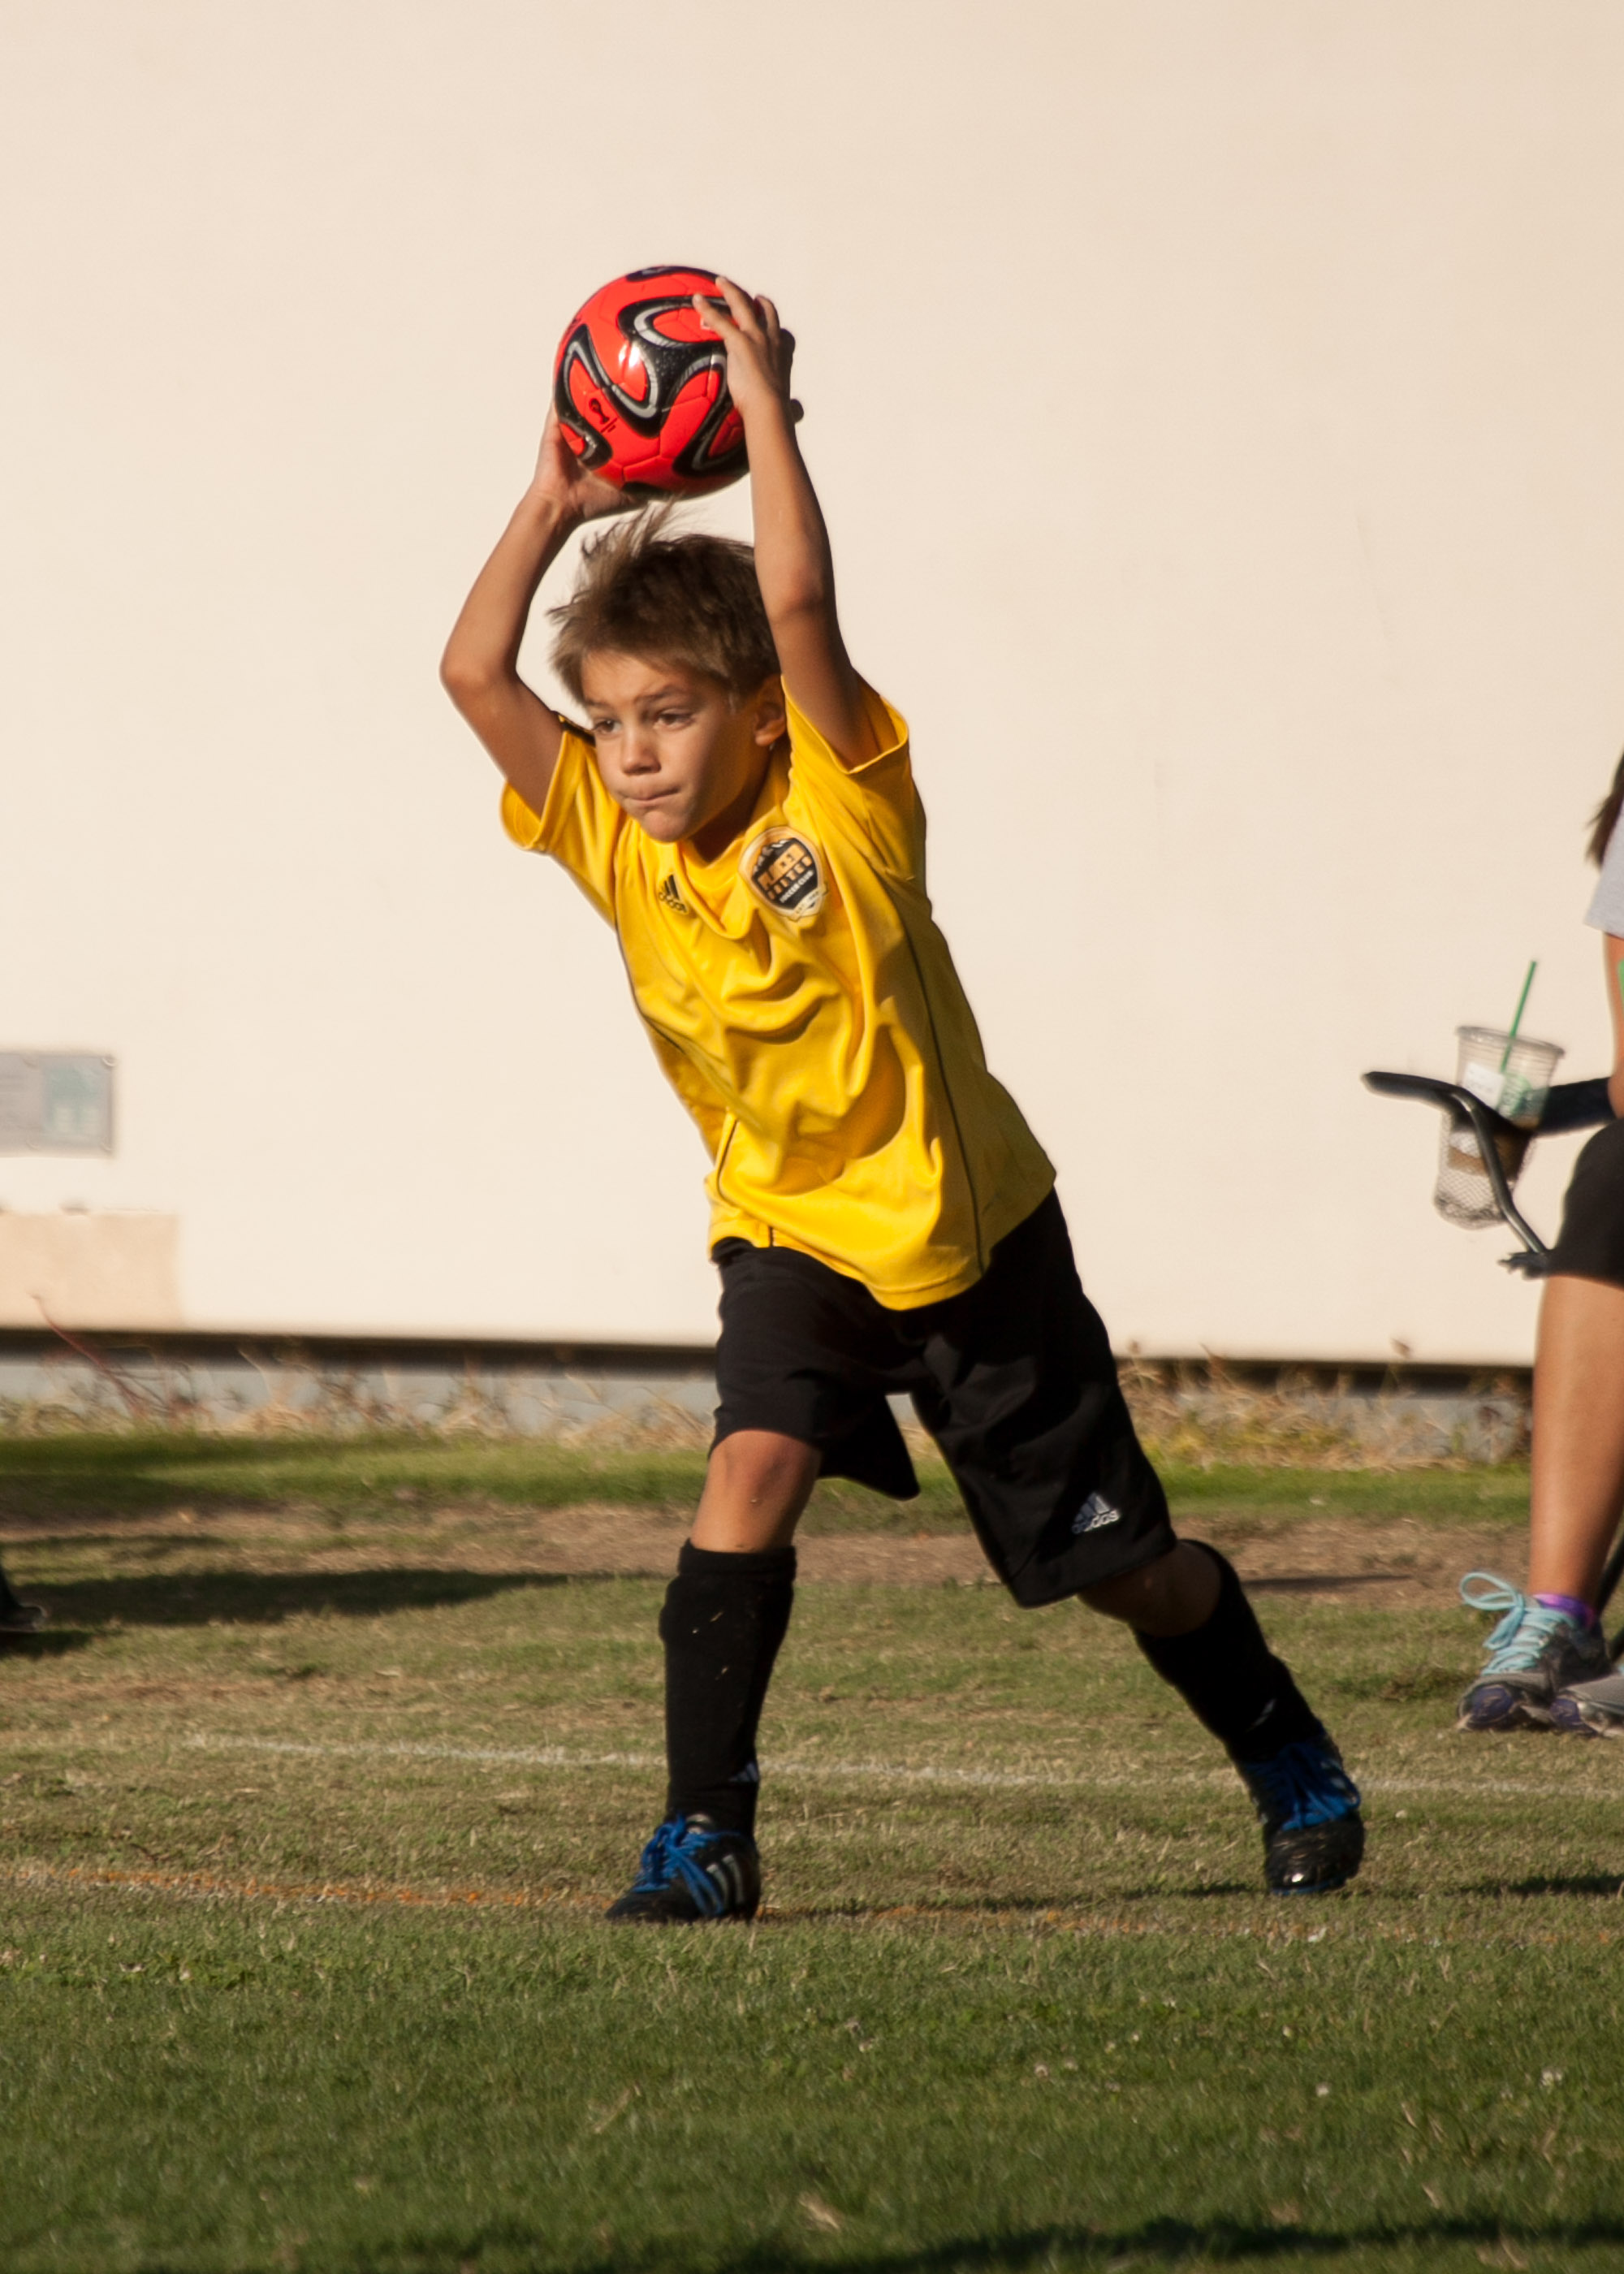 U6-U10 Recreational Program